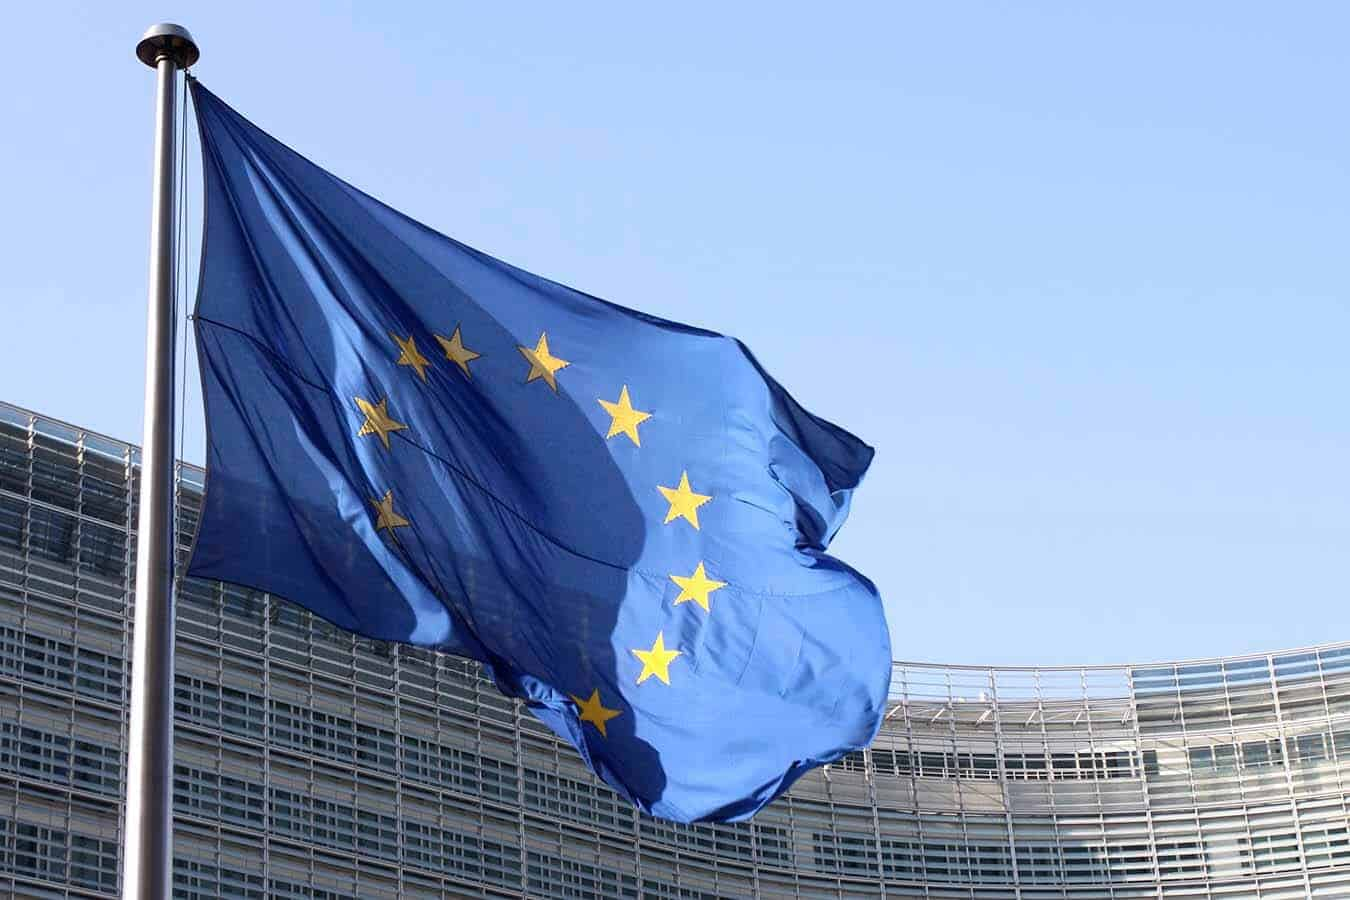 EU agreement on response to cyber-attacks